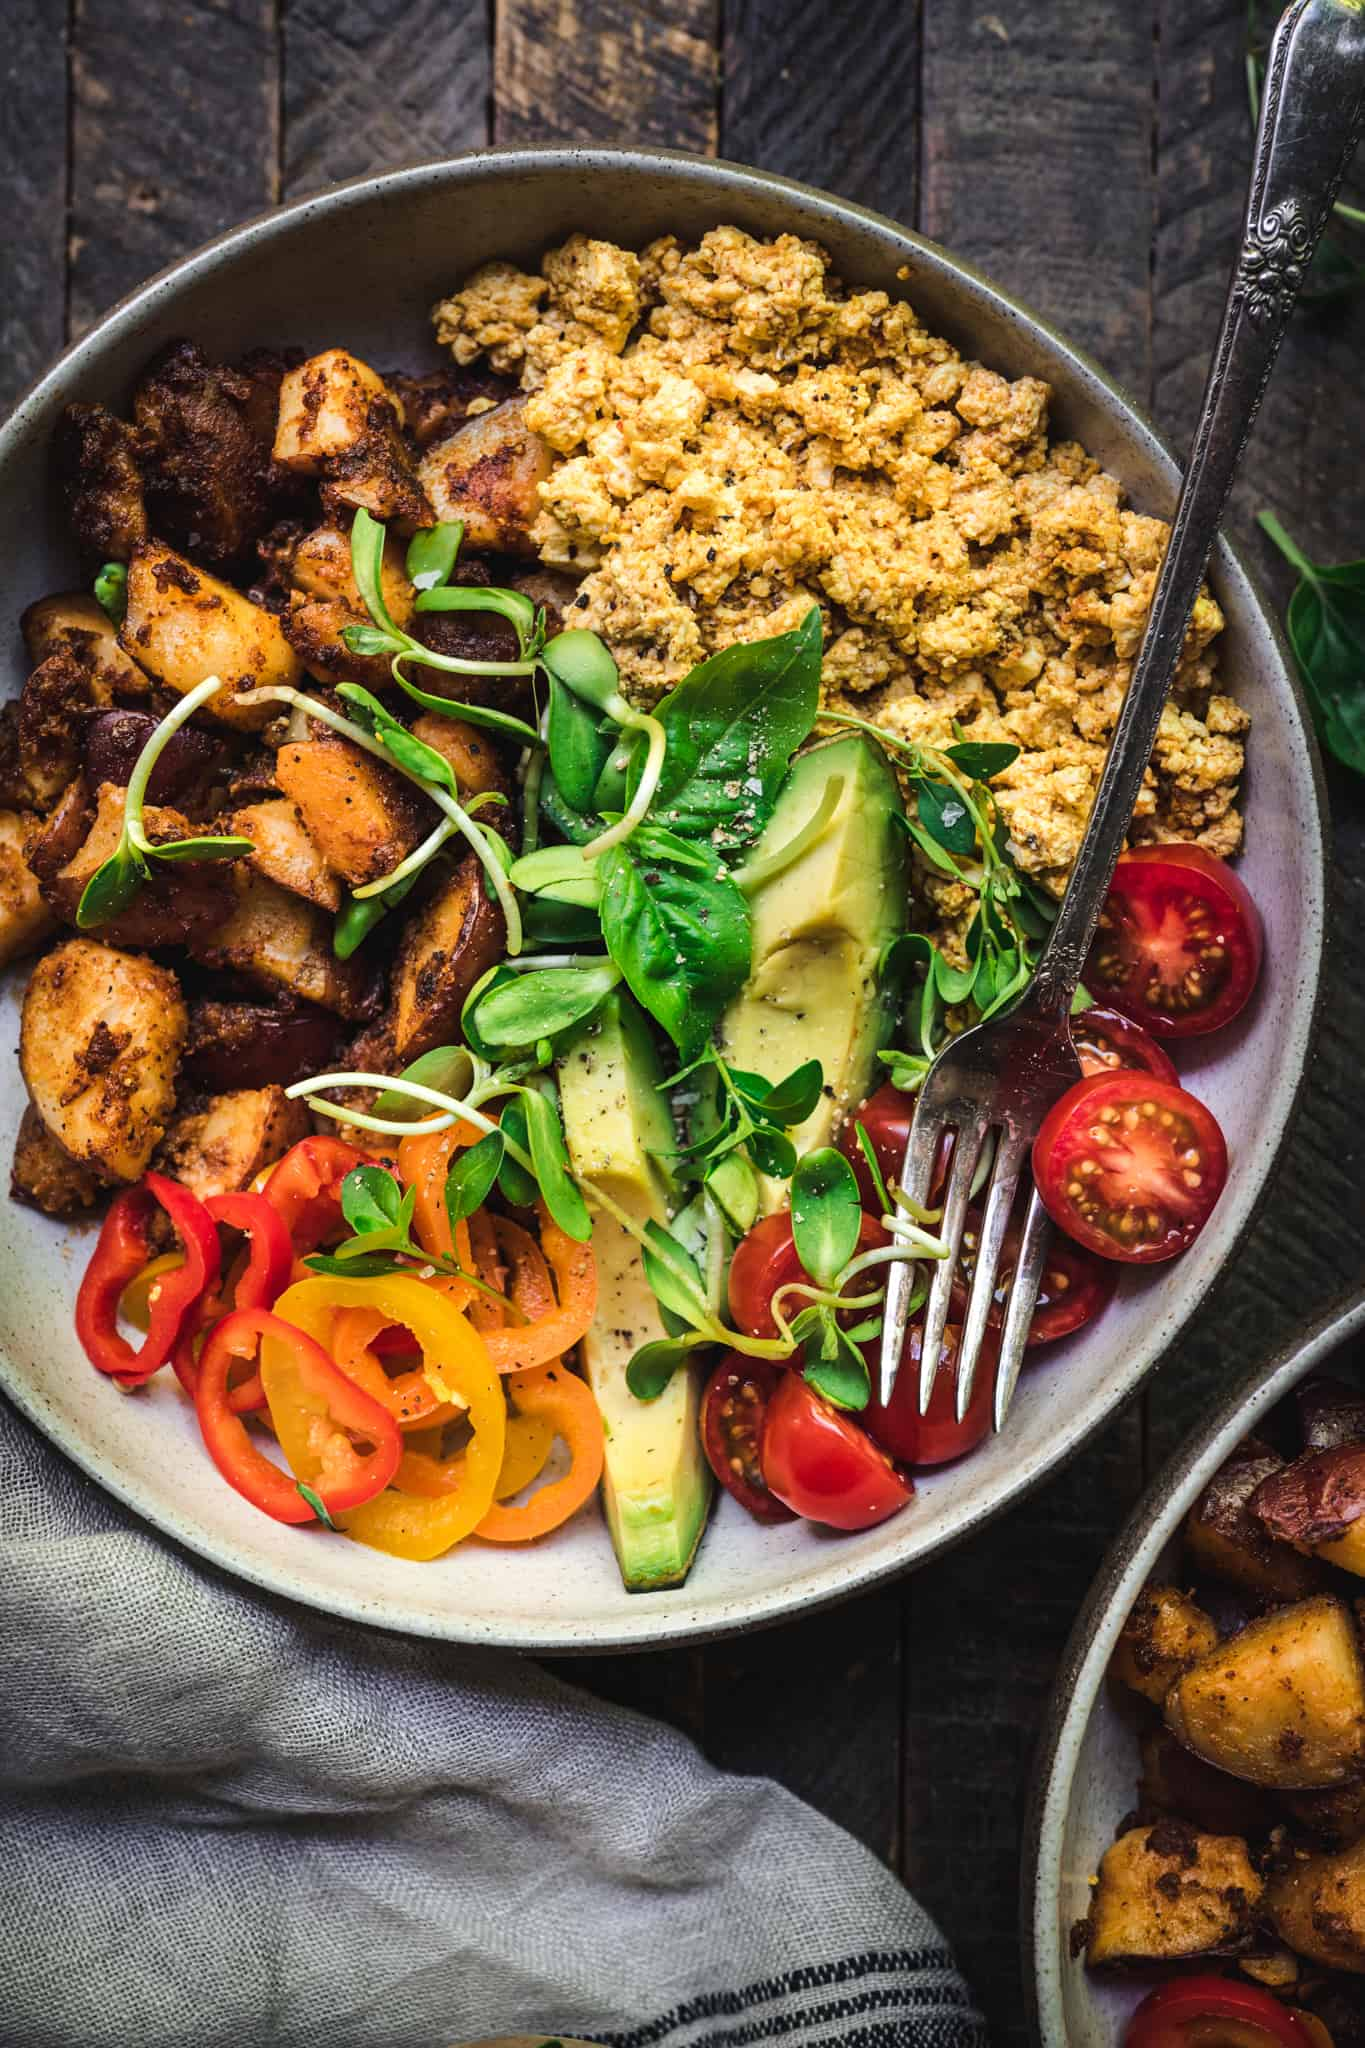 Overhead of vegan breakfast bowl with a fork